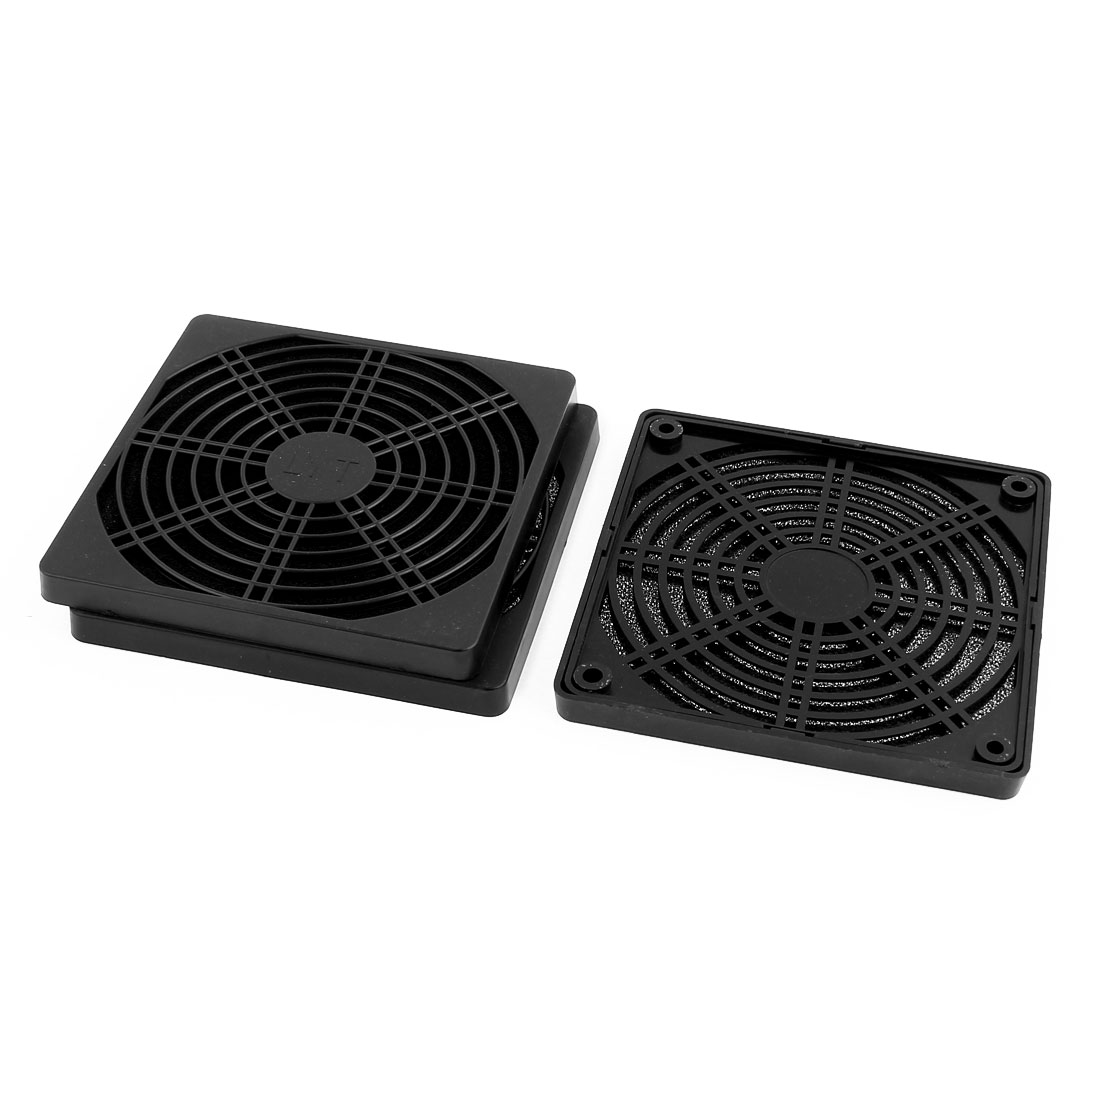 3pcs 125mm x 125mm Dustproof Case PC Computer Case Fan Dust Filter